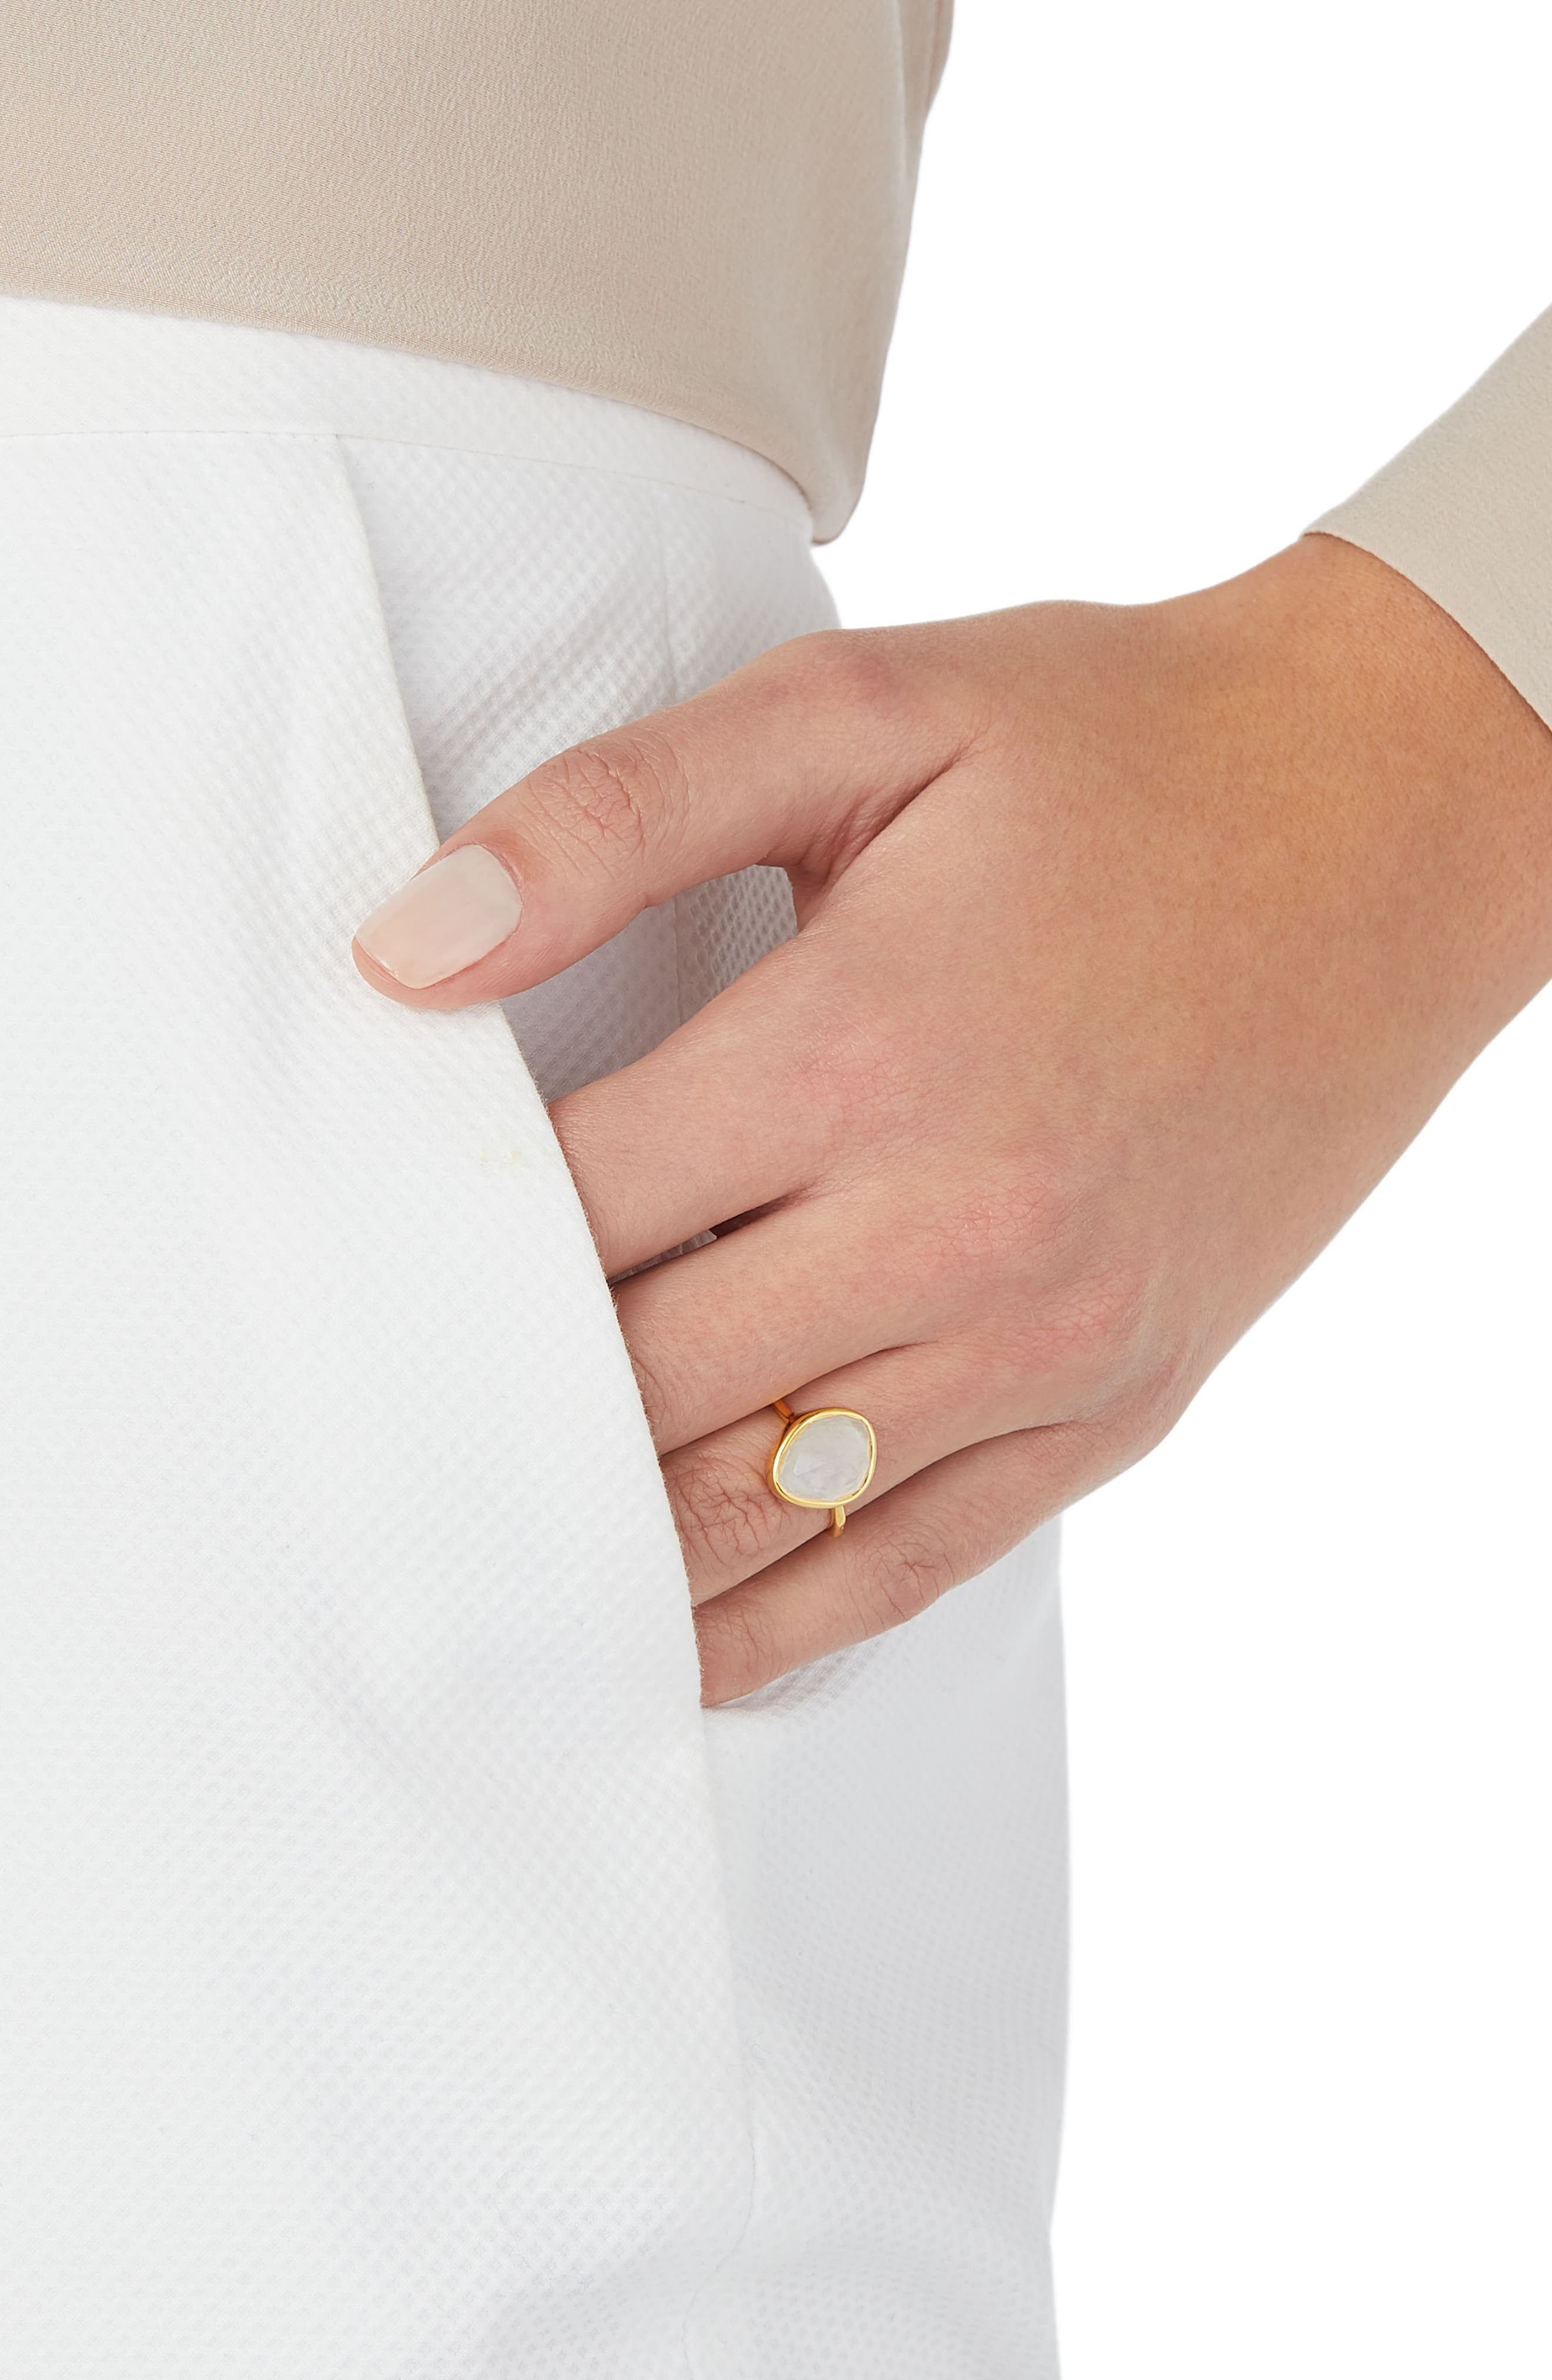 Siren Small Nugget Stacking Ring,                             Alternate thumbnail 2, color,                             YELLOW GOLD/ MOONSTONE